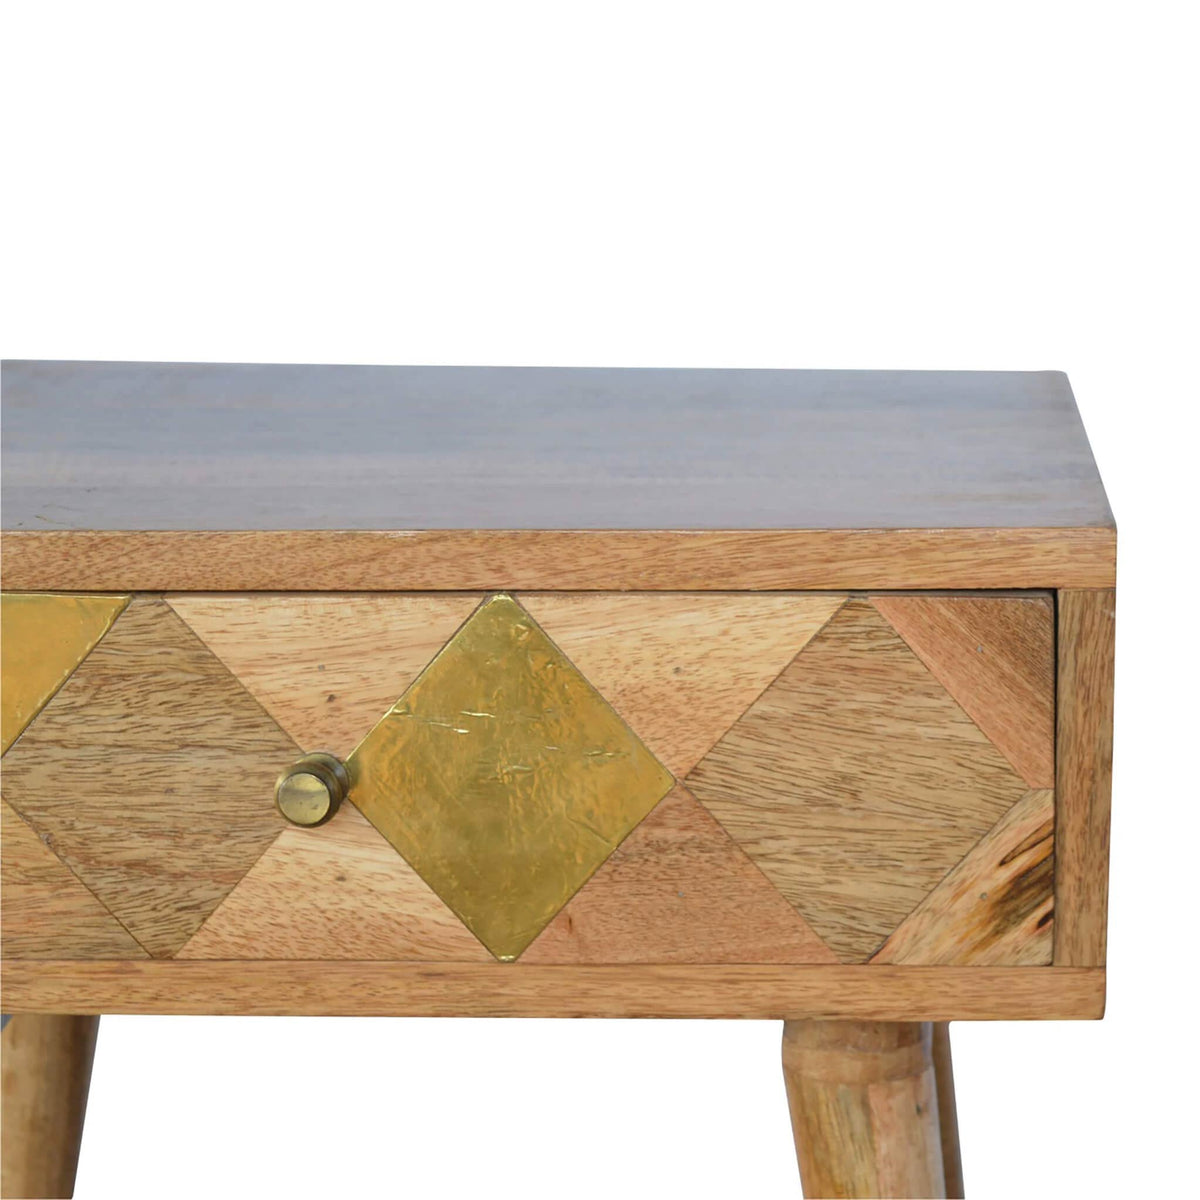 Artisan Retro Bedside Side Table with Brass Insert - drawer close up